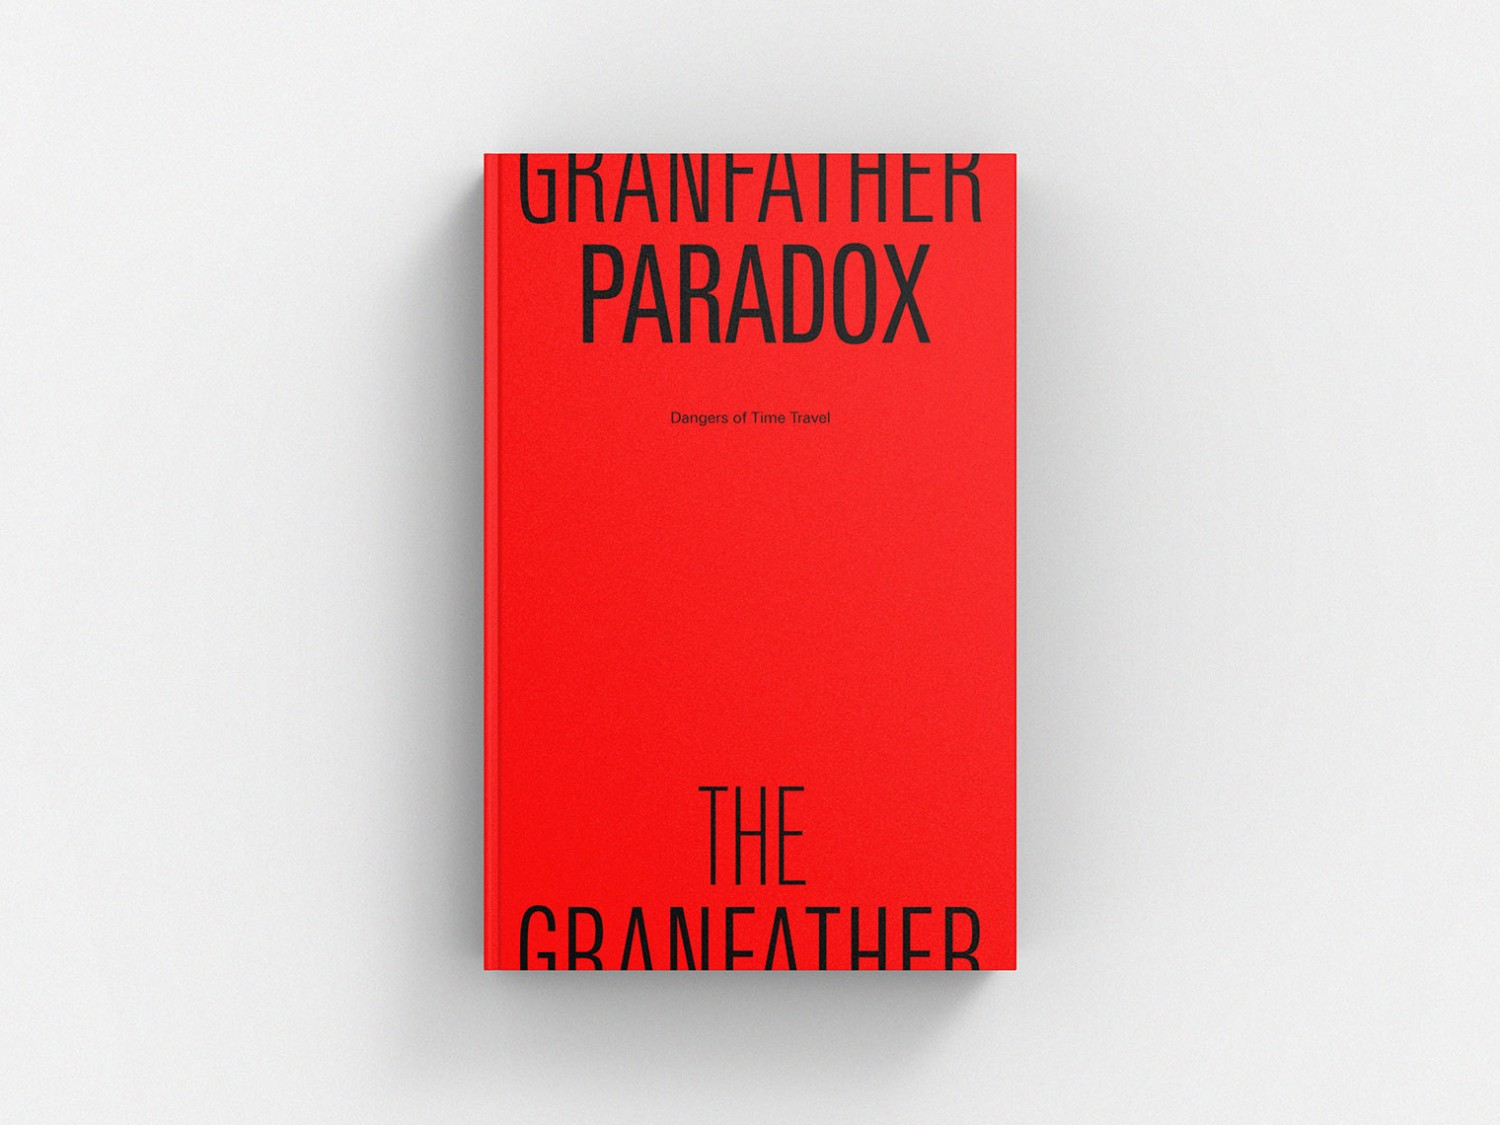 The Grandfather Paradox: Dangers of Time Travel